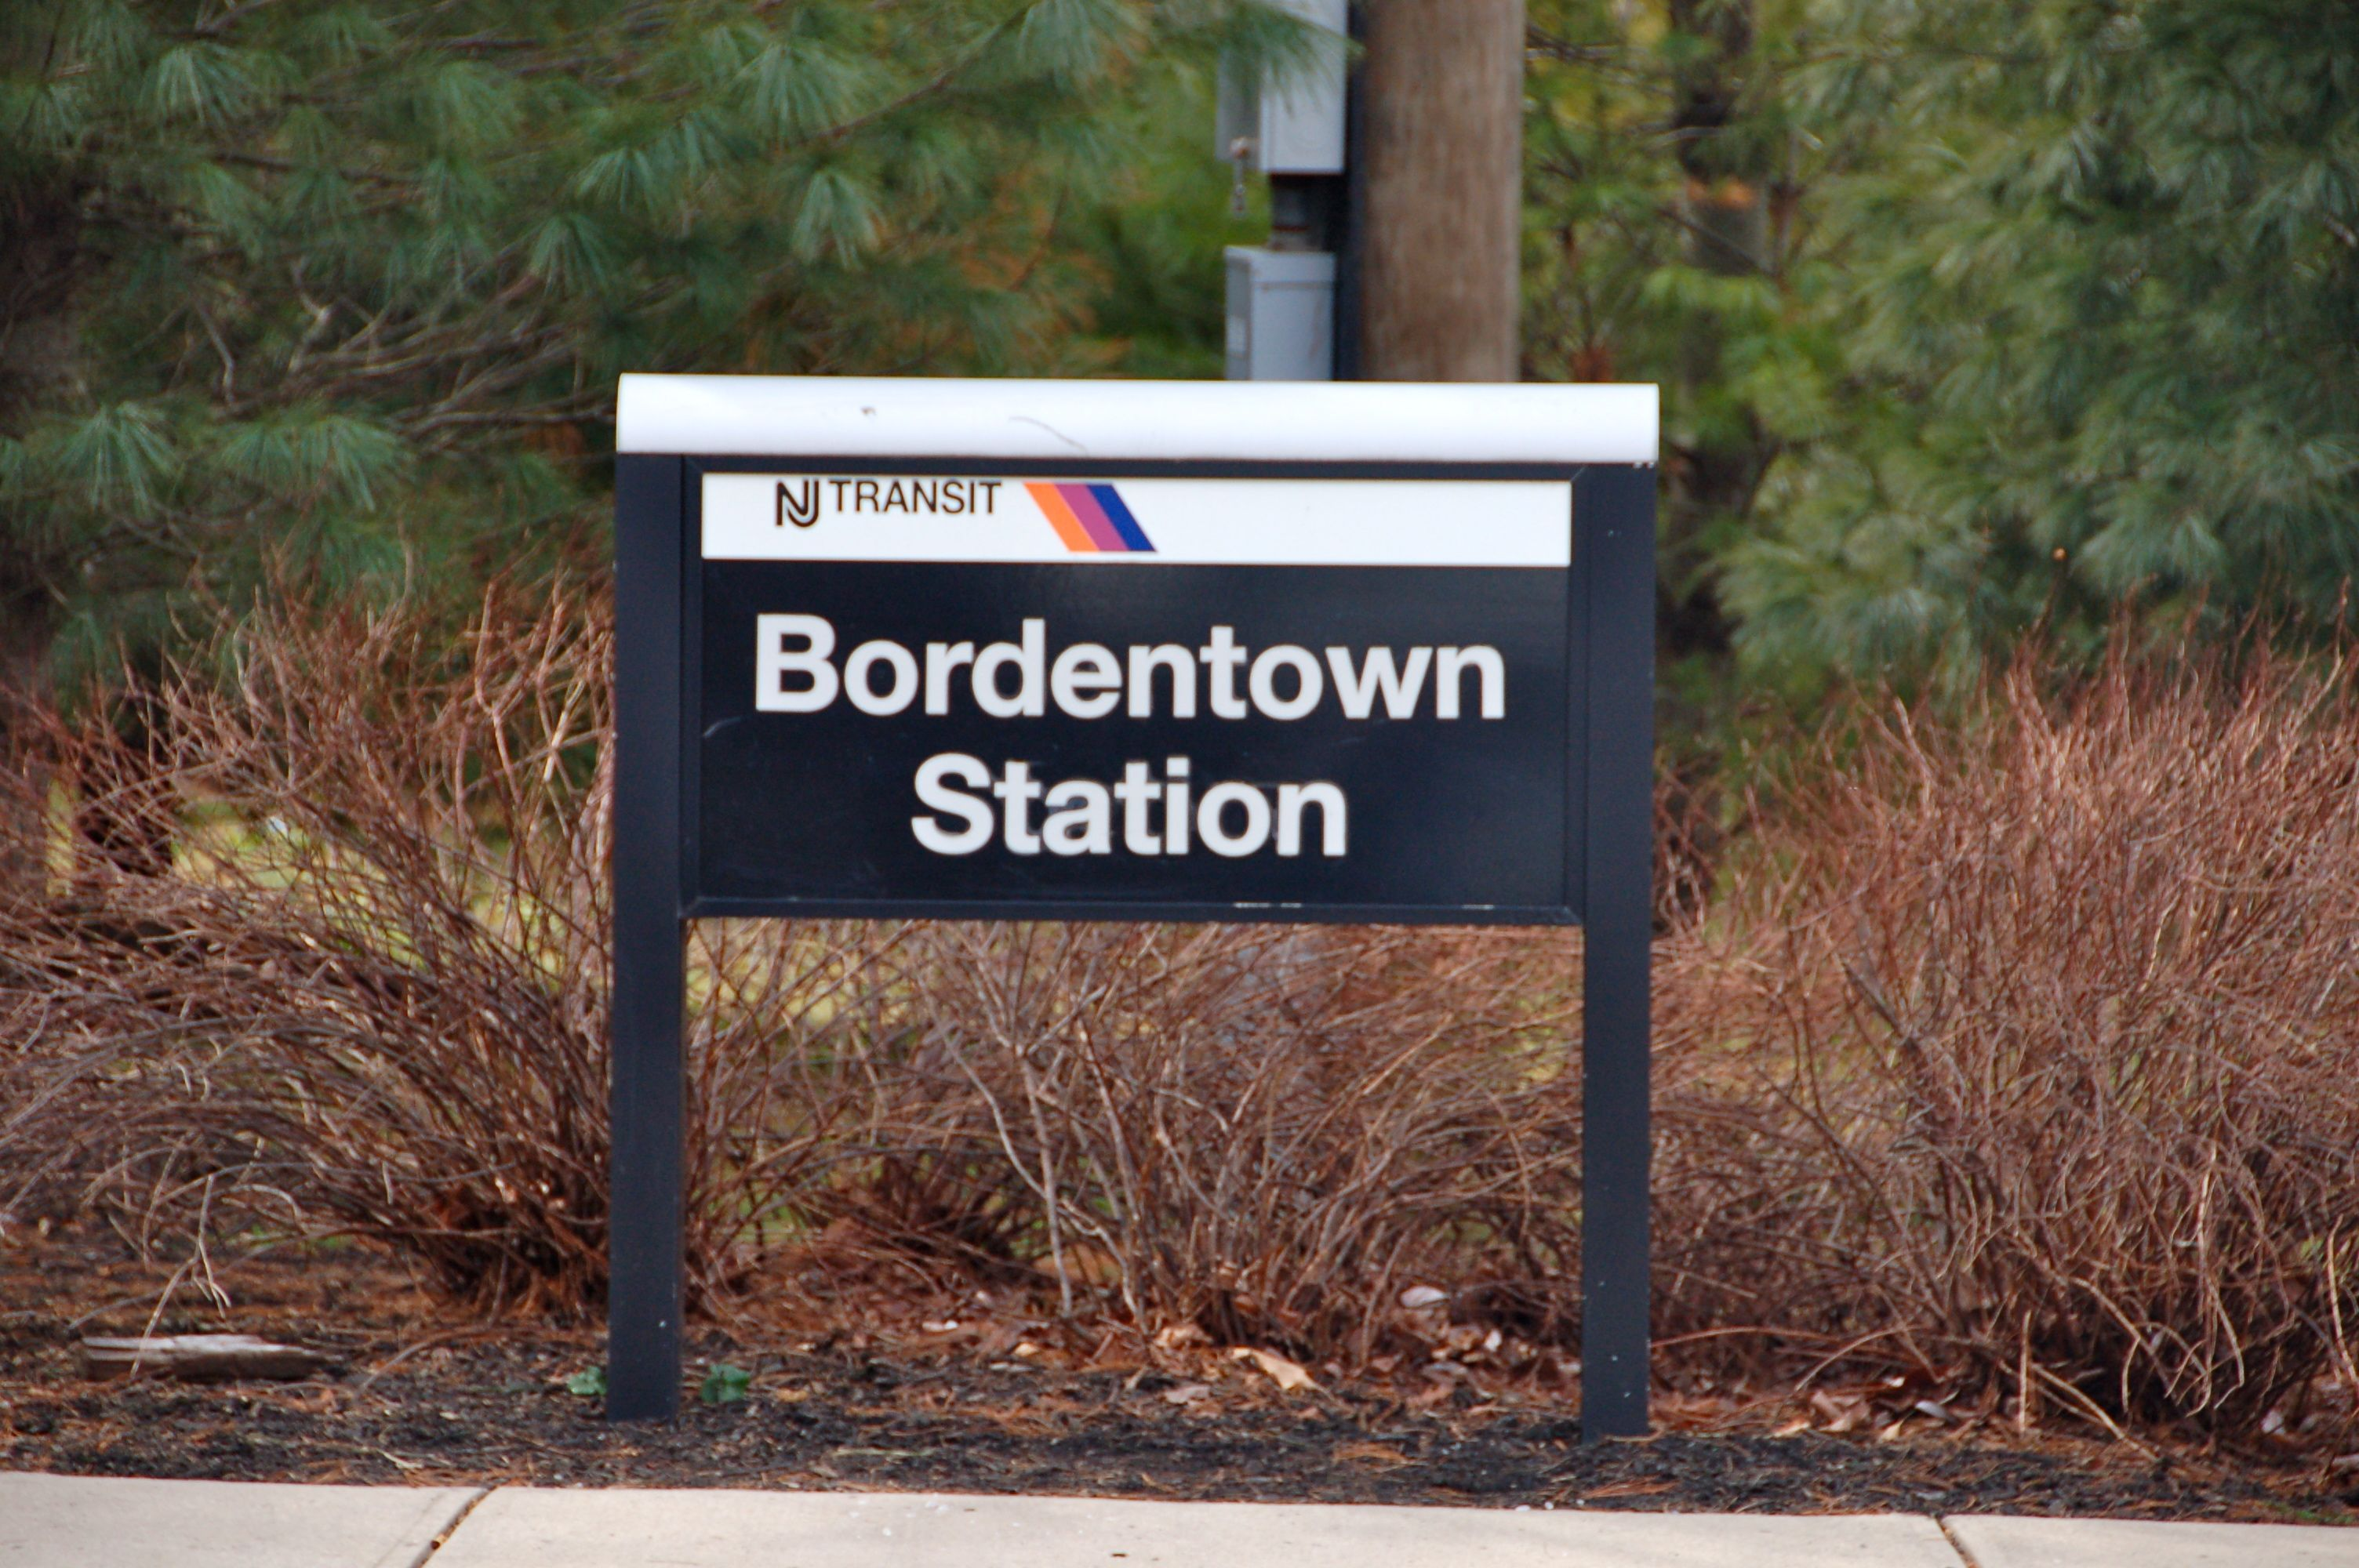 Bordentown is on the NJ Transit Light Rail line  Hop on the